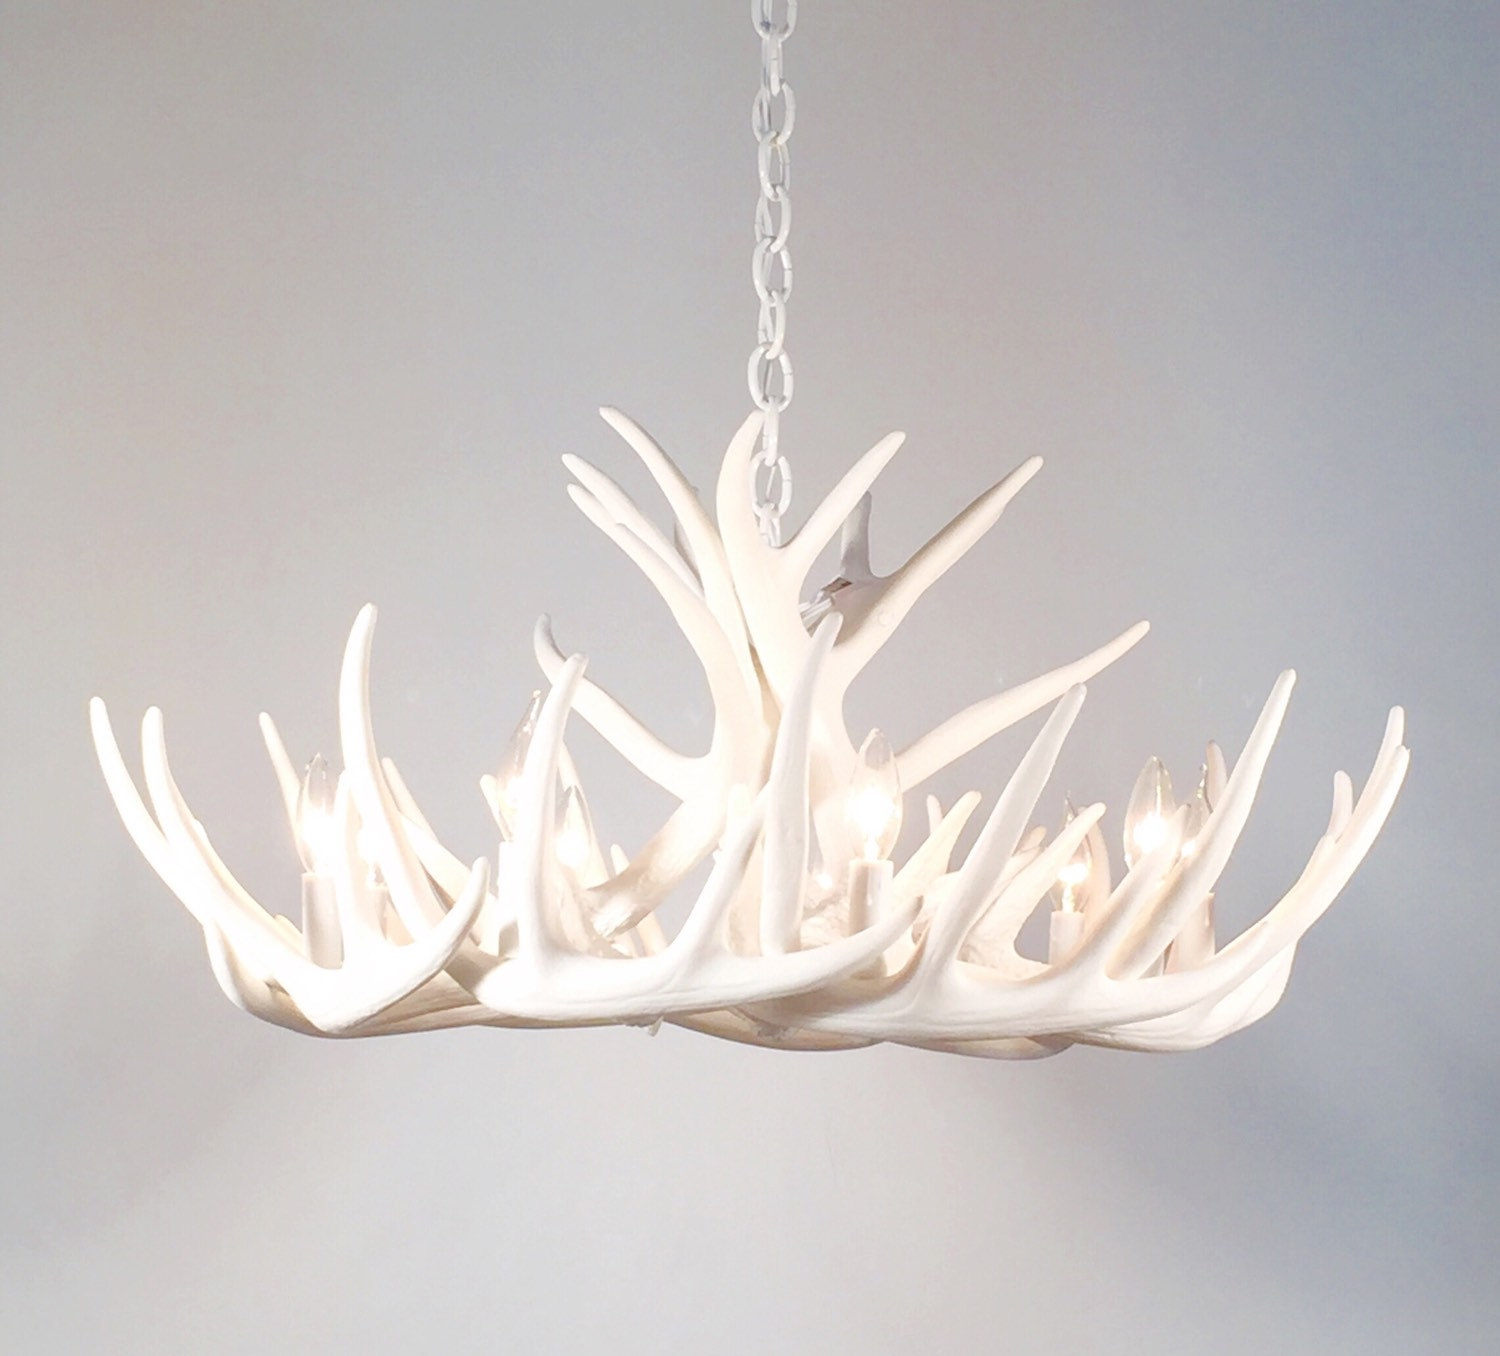 Antler Chandelier Etsy With Regard To Antler Chandeliers And Lighting (Image 3 of 15)